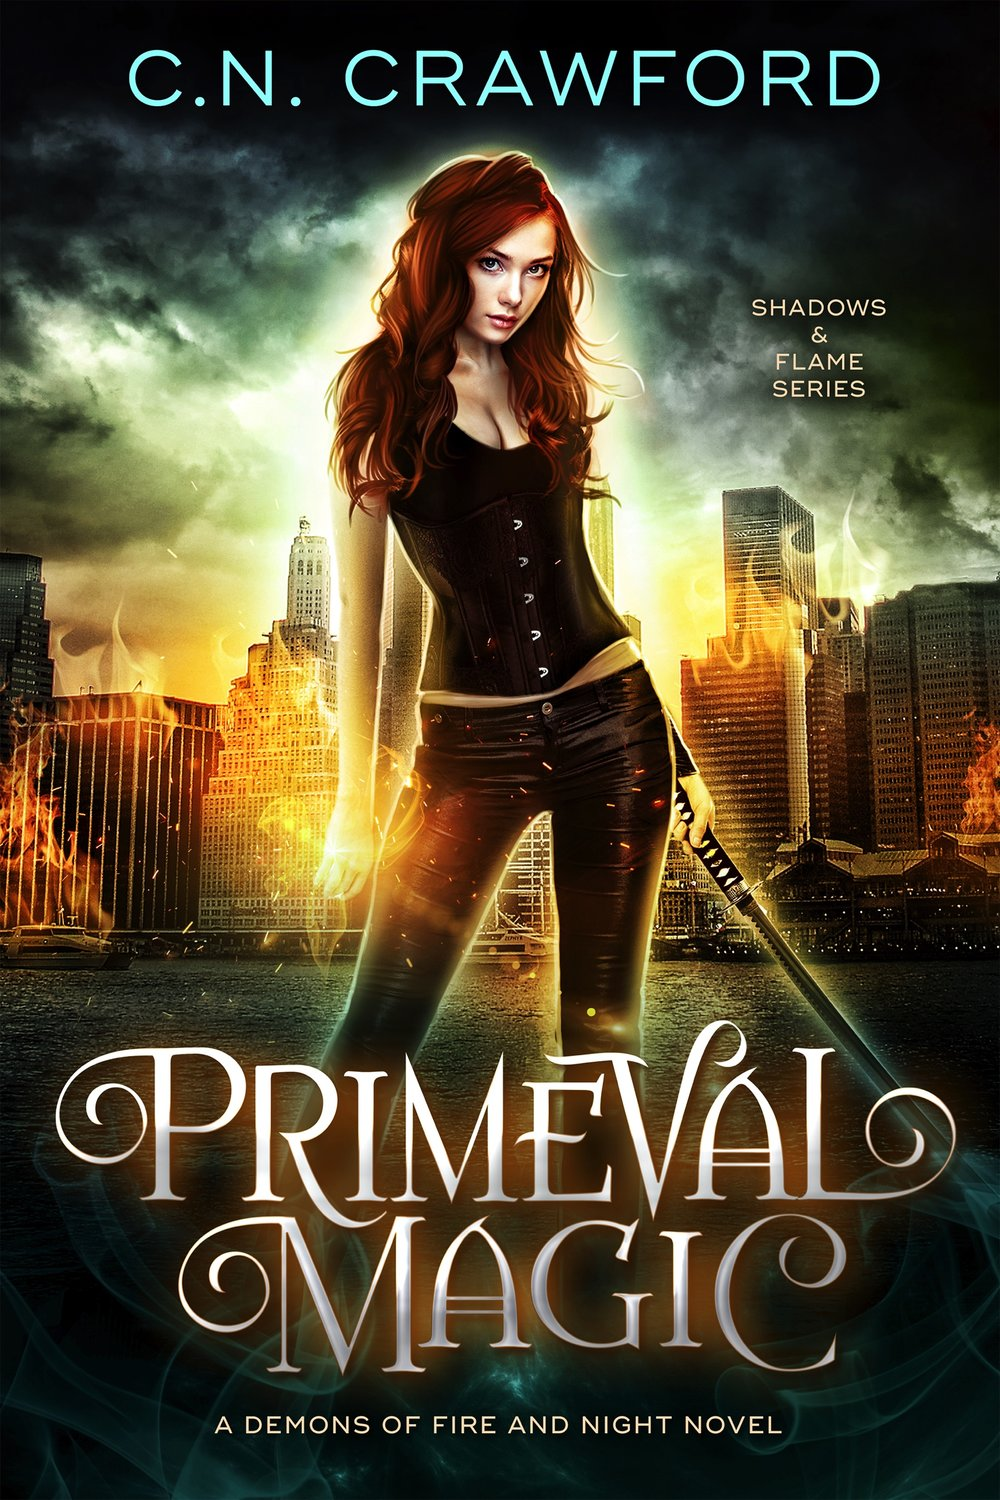 Book 3: Primeval Magic